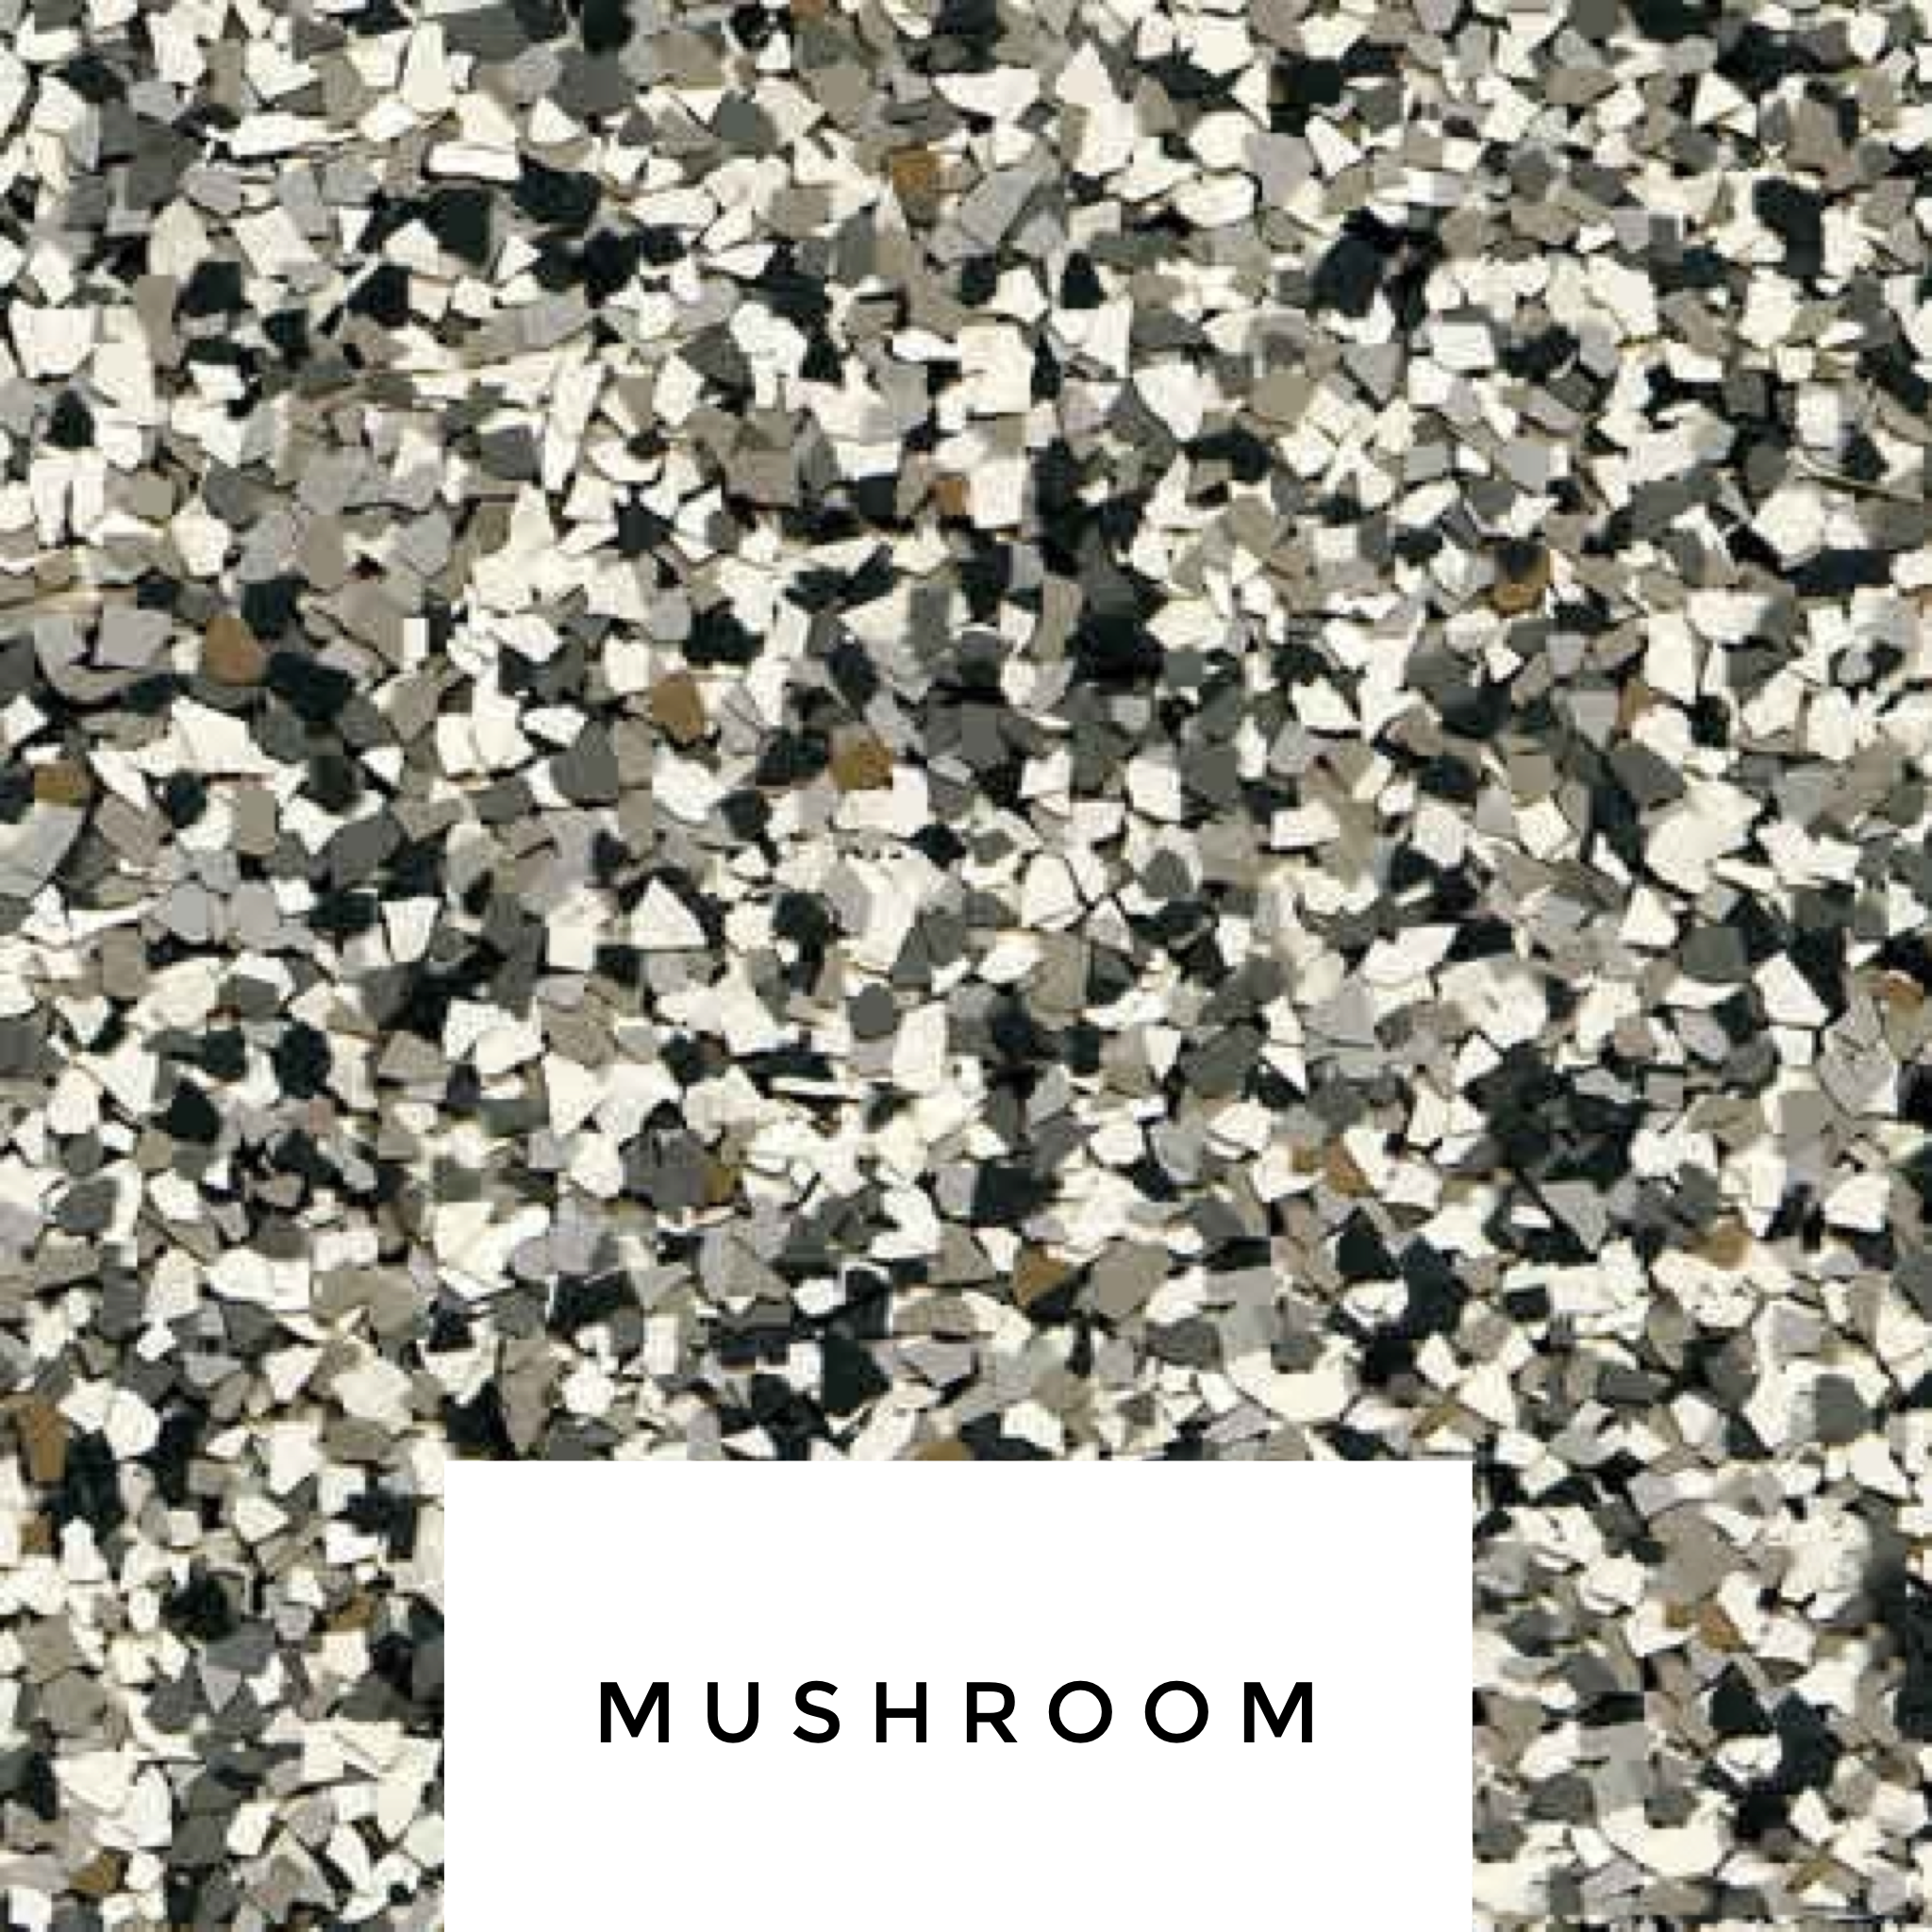 Mushroom Flake Blend - This blend has a great combination of greys and beige.- cream, brown, medium grays and bit of black.